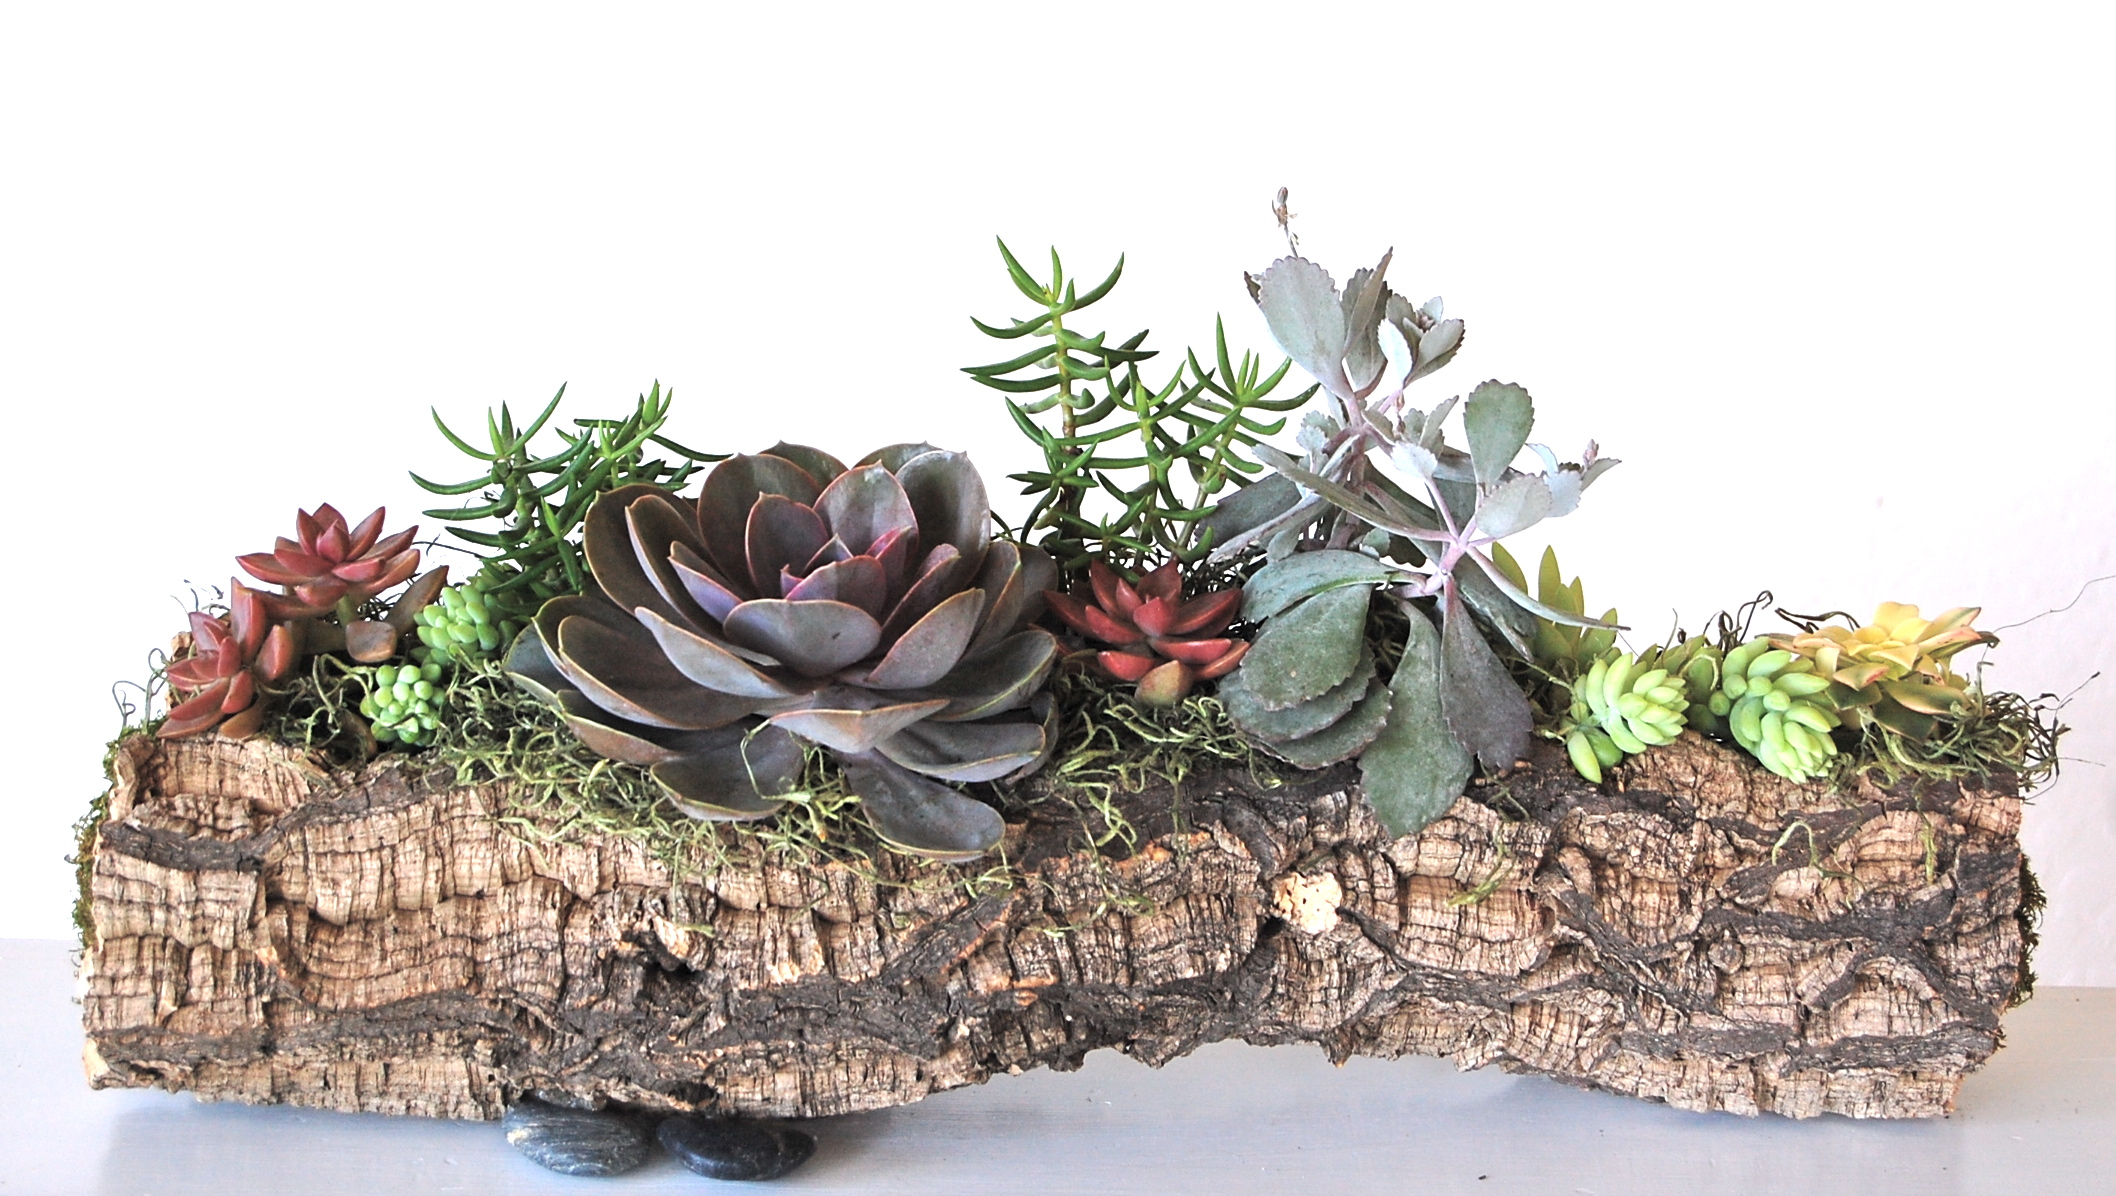 """PLANTED MEDIUM CORK BARK LOG     16""""w x 8""""h (as shown) $135.– various sizes available starting at $75."""